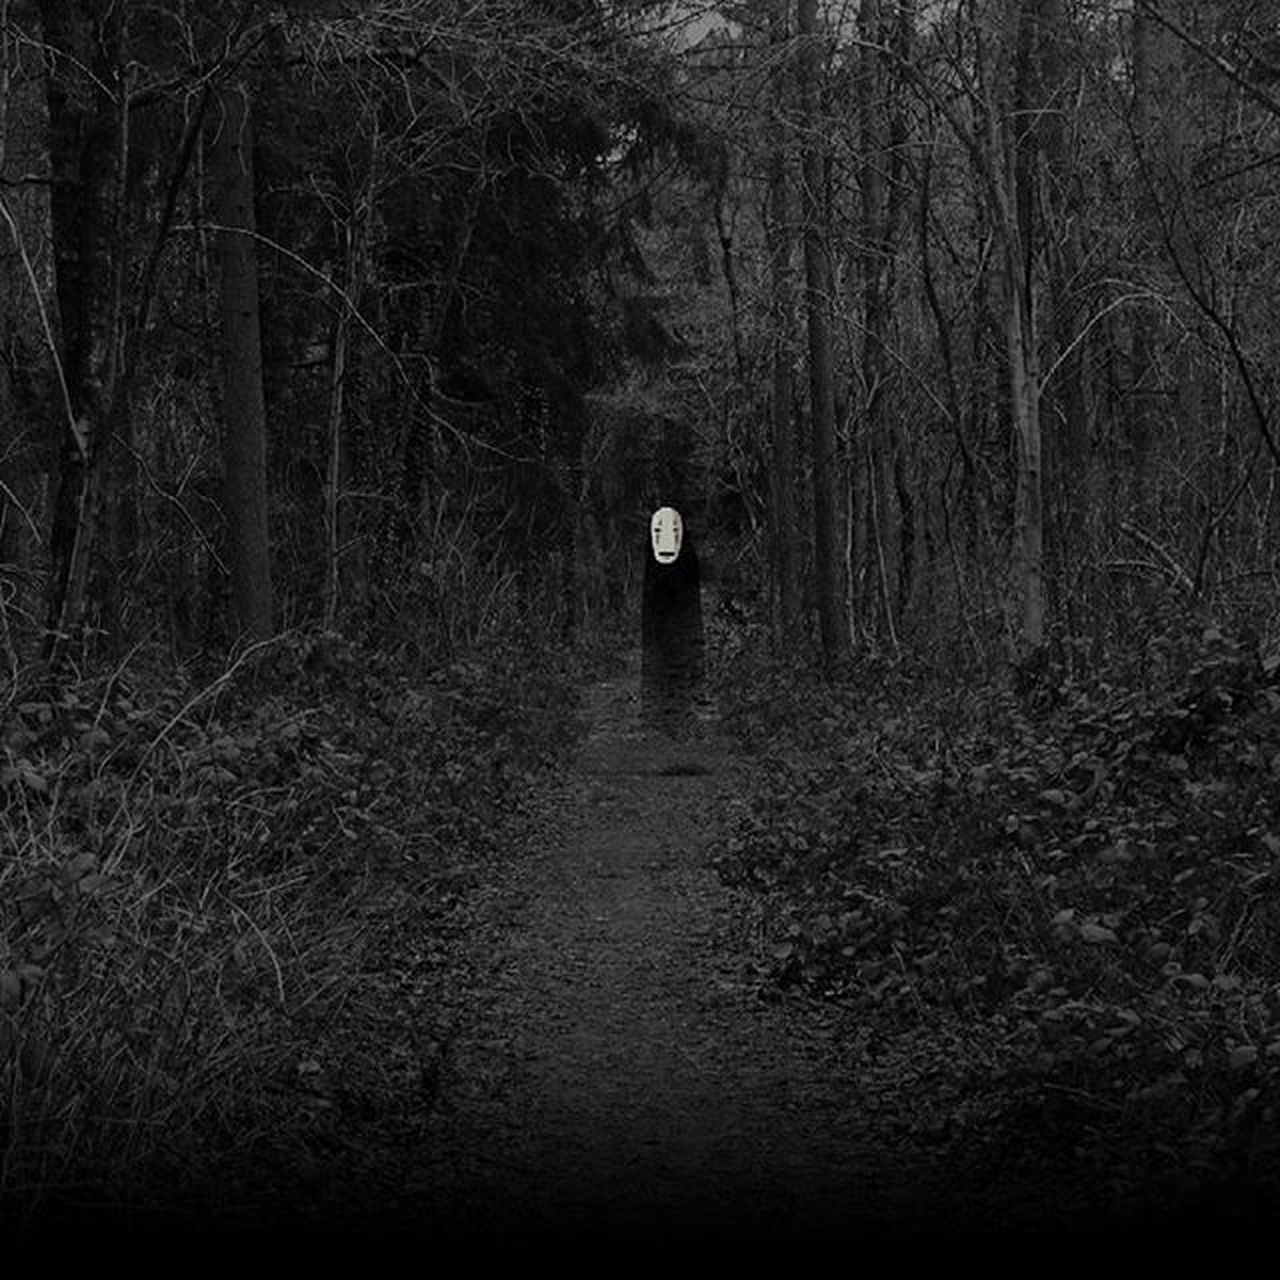 The Photo is taken Byme i only put a Blackandwhite Filter and Noface on it. My Favourite Studioghibli Character Photograpy Landscape Forest Trees Tree Dark Ghost Follow Chihiro Ohngesicht Scary Copyright Canon Amateur Wallpaper Instagood Instapic photooftheday pictureoftheday anime otaku japan @studi0ghibli